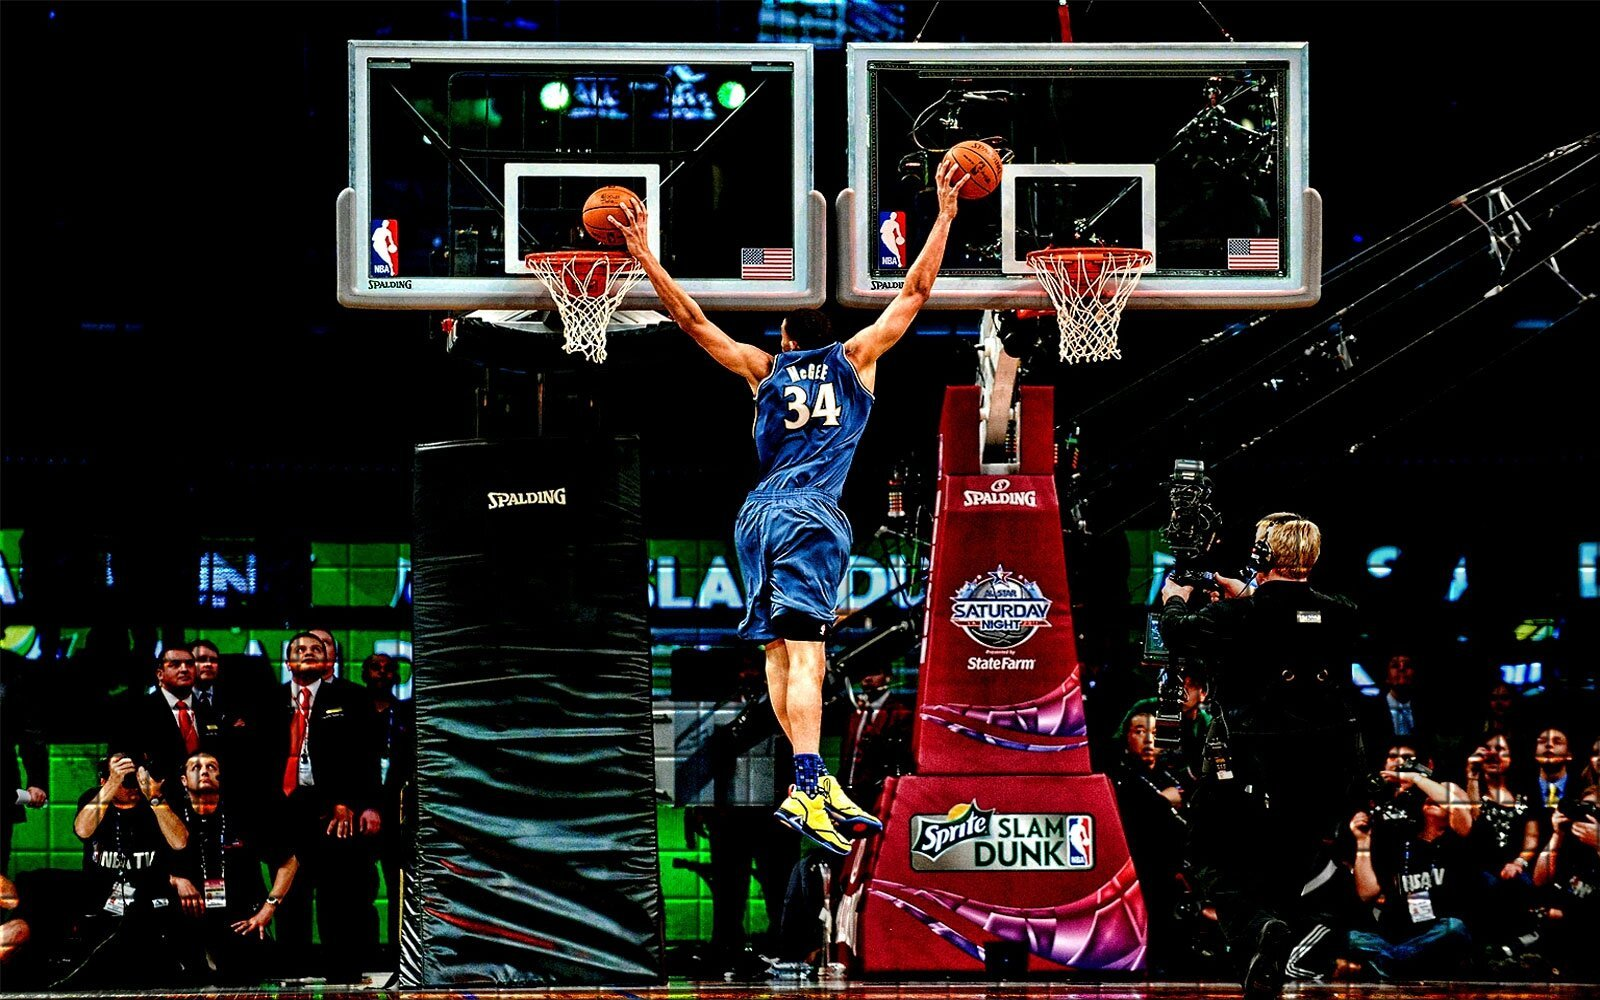 Key and Peele Explain How To Fix The Dunk Contest